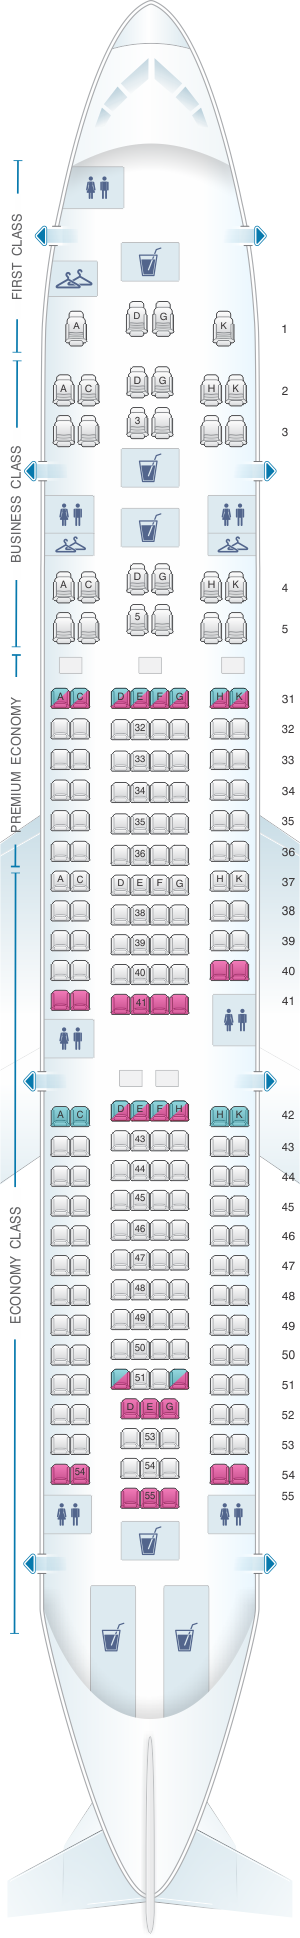 Seat map for China Southern Airlines Airbus A330-200 Layout B